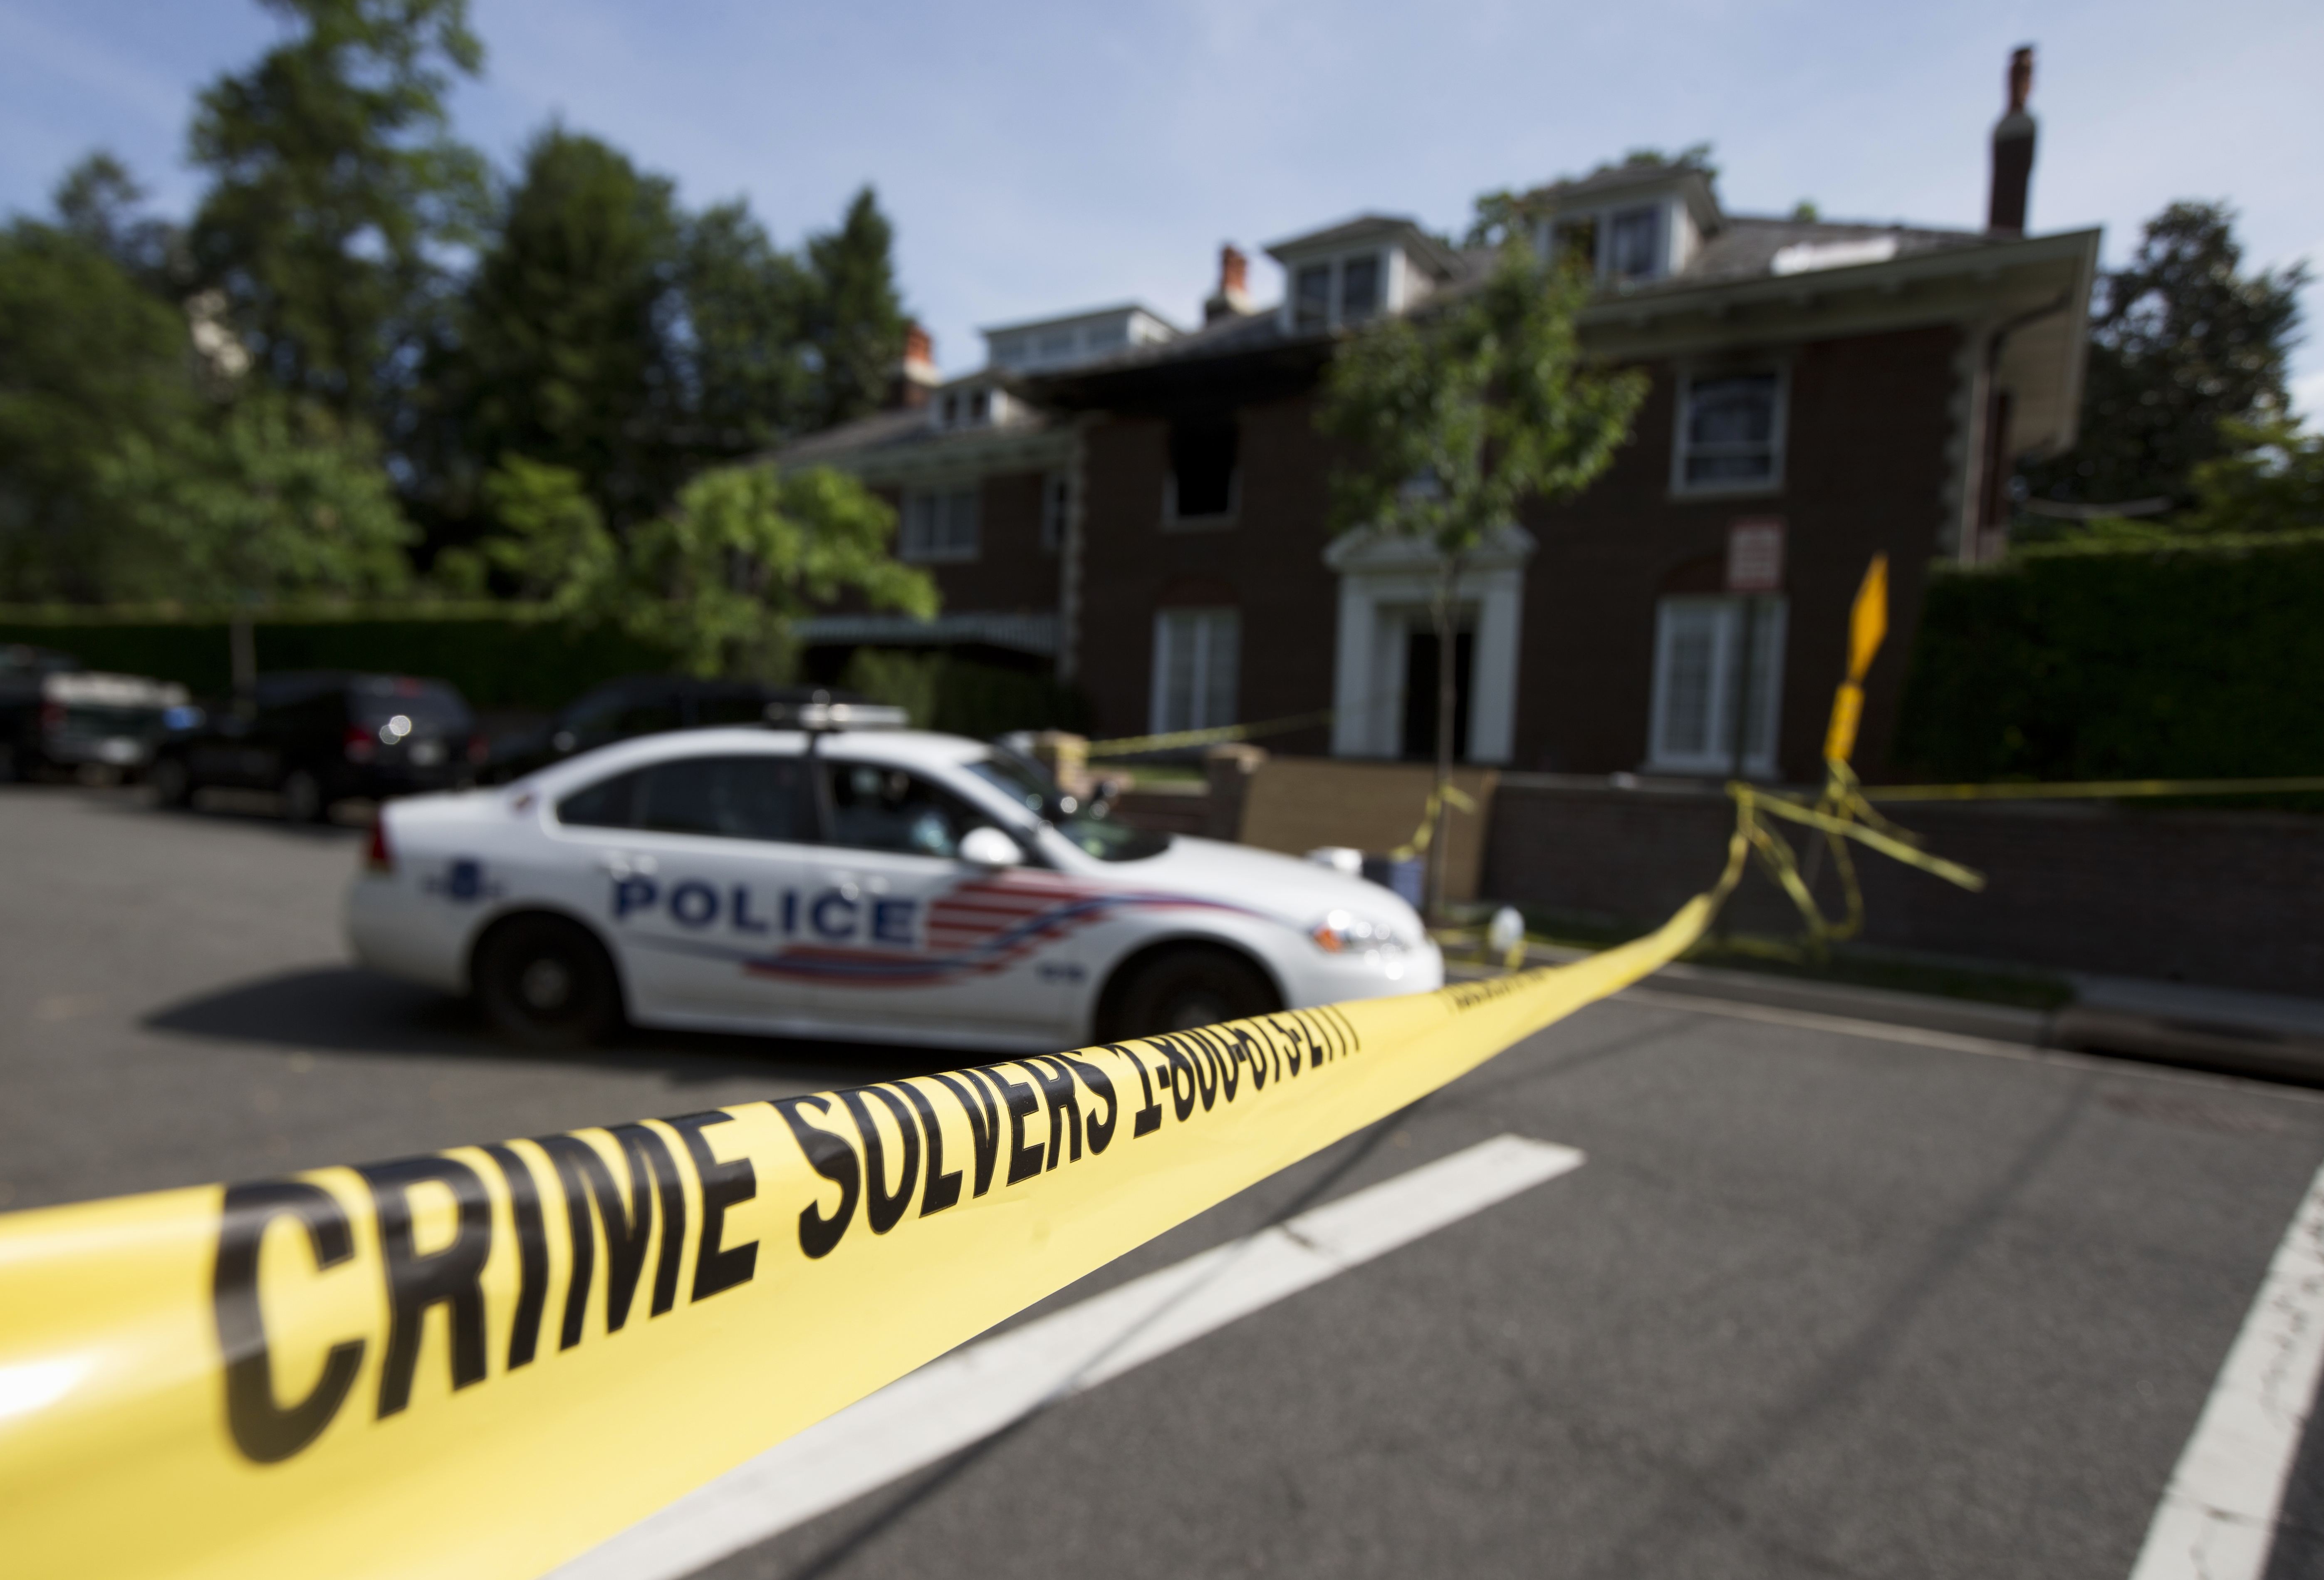 Police look into assistant who dropped $40K at home of D.C. quadruple homicide